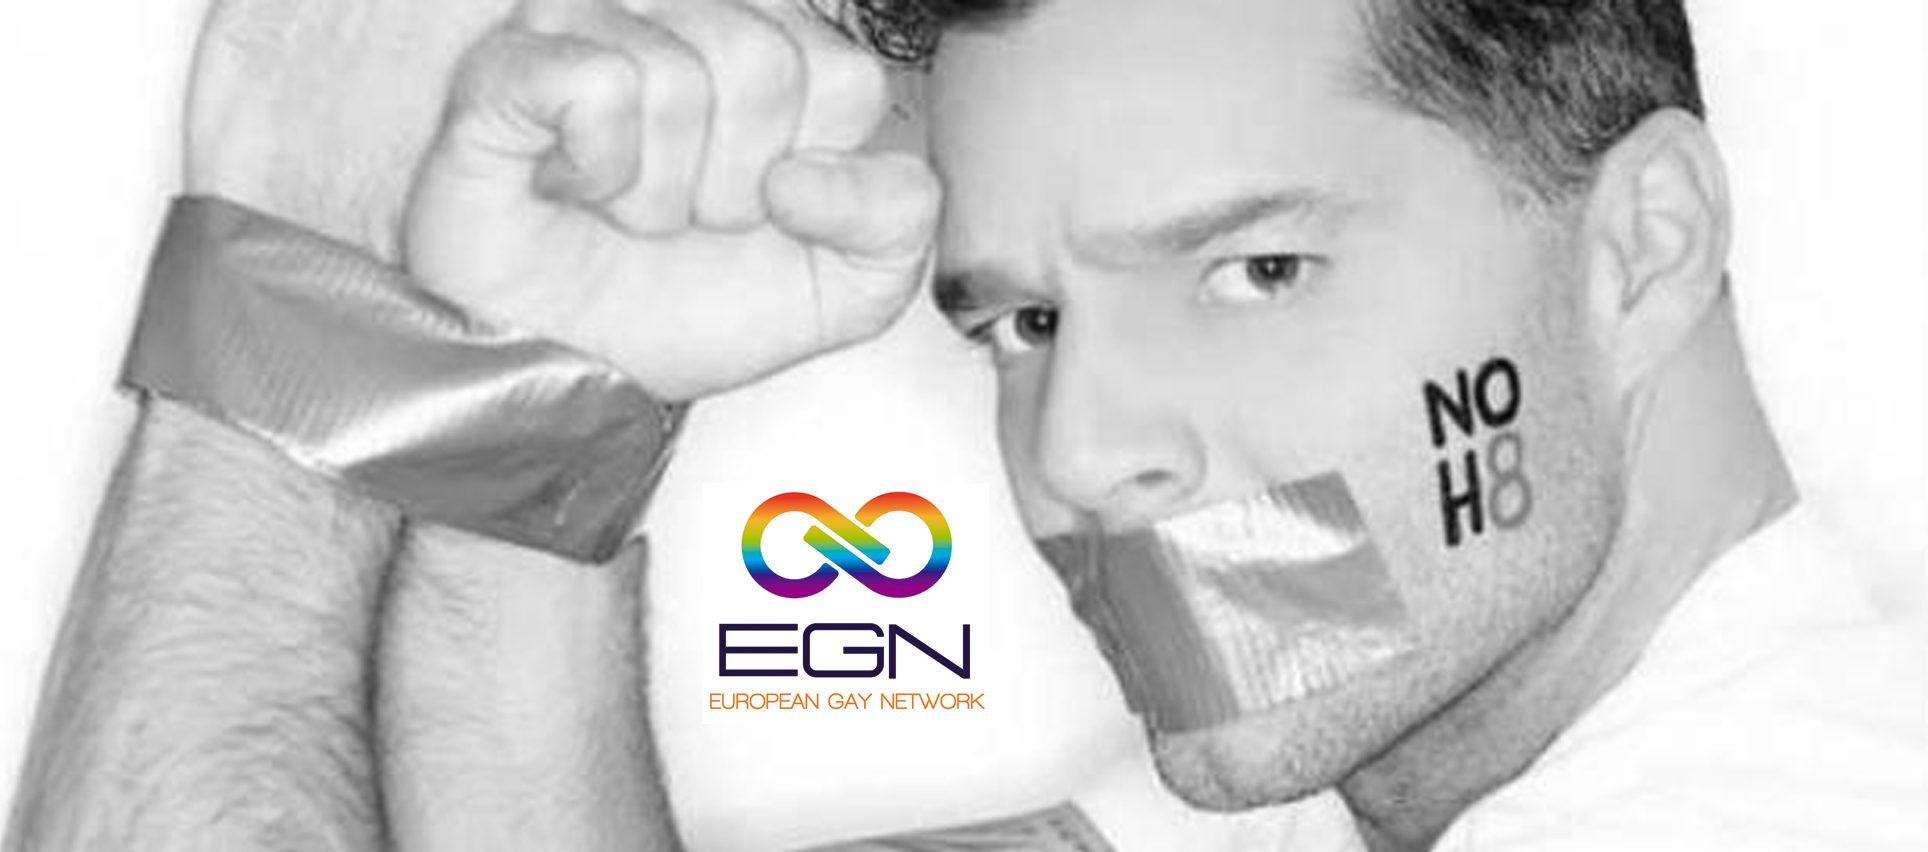 European Gay Network